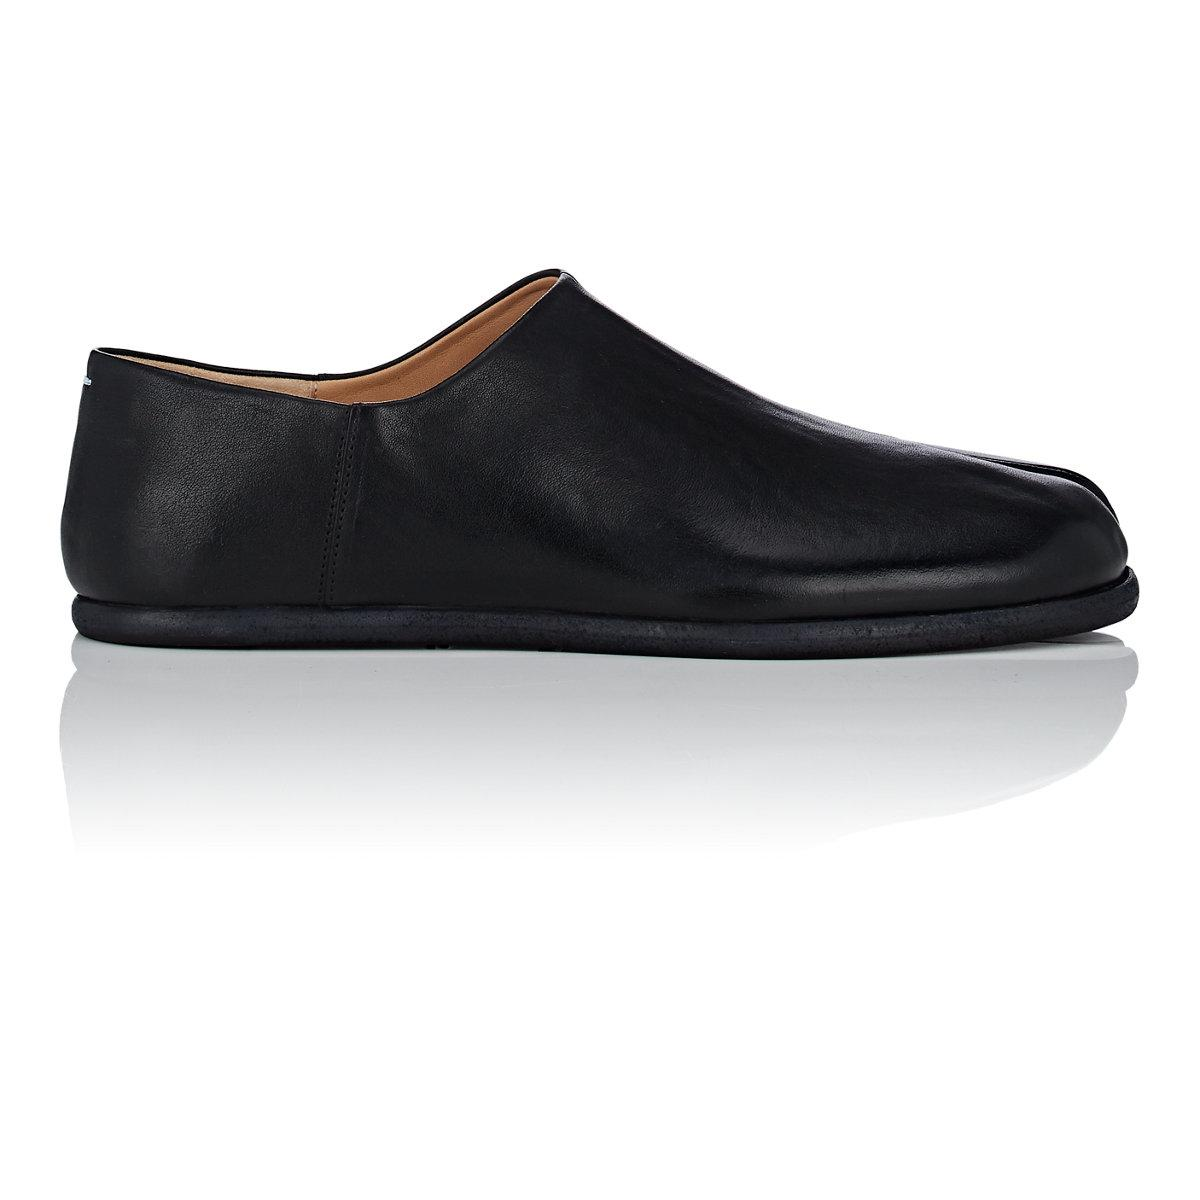 Mens Tabi Leather Loafers Maison Martin Margiela Outlet How Much Cheapest For Sale Cheap Finishline Genuine Sale Online Outlet Best Seller ezfCm